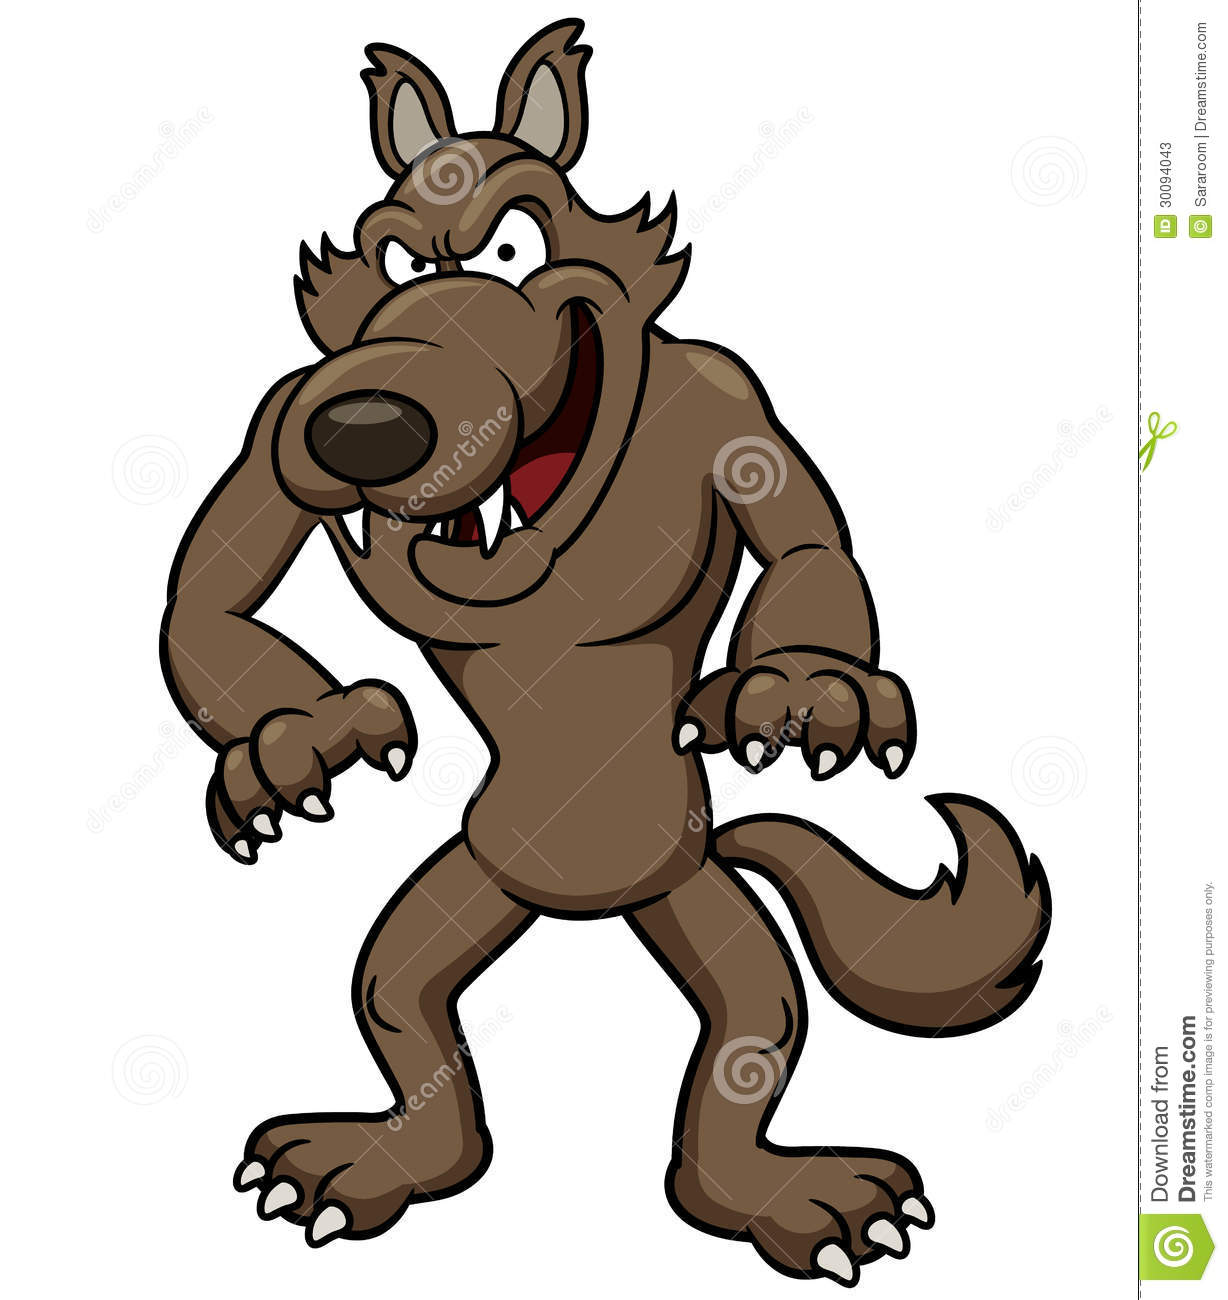 Wolf Cartoon Stock Photos - Image: 30094043